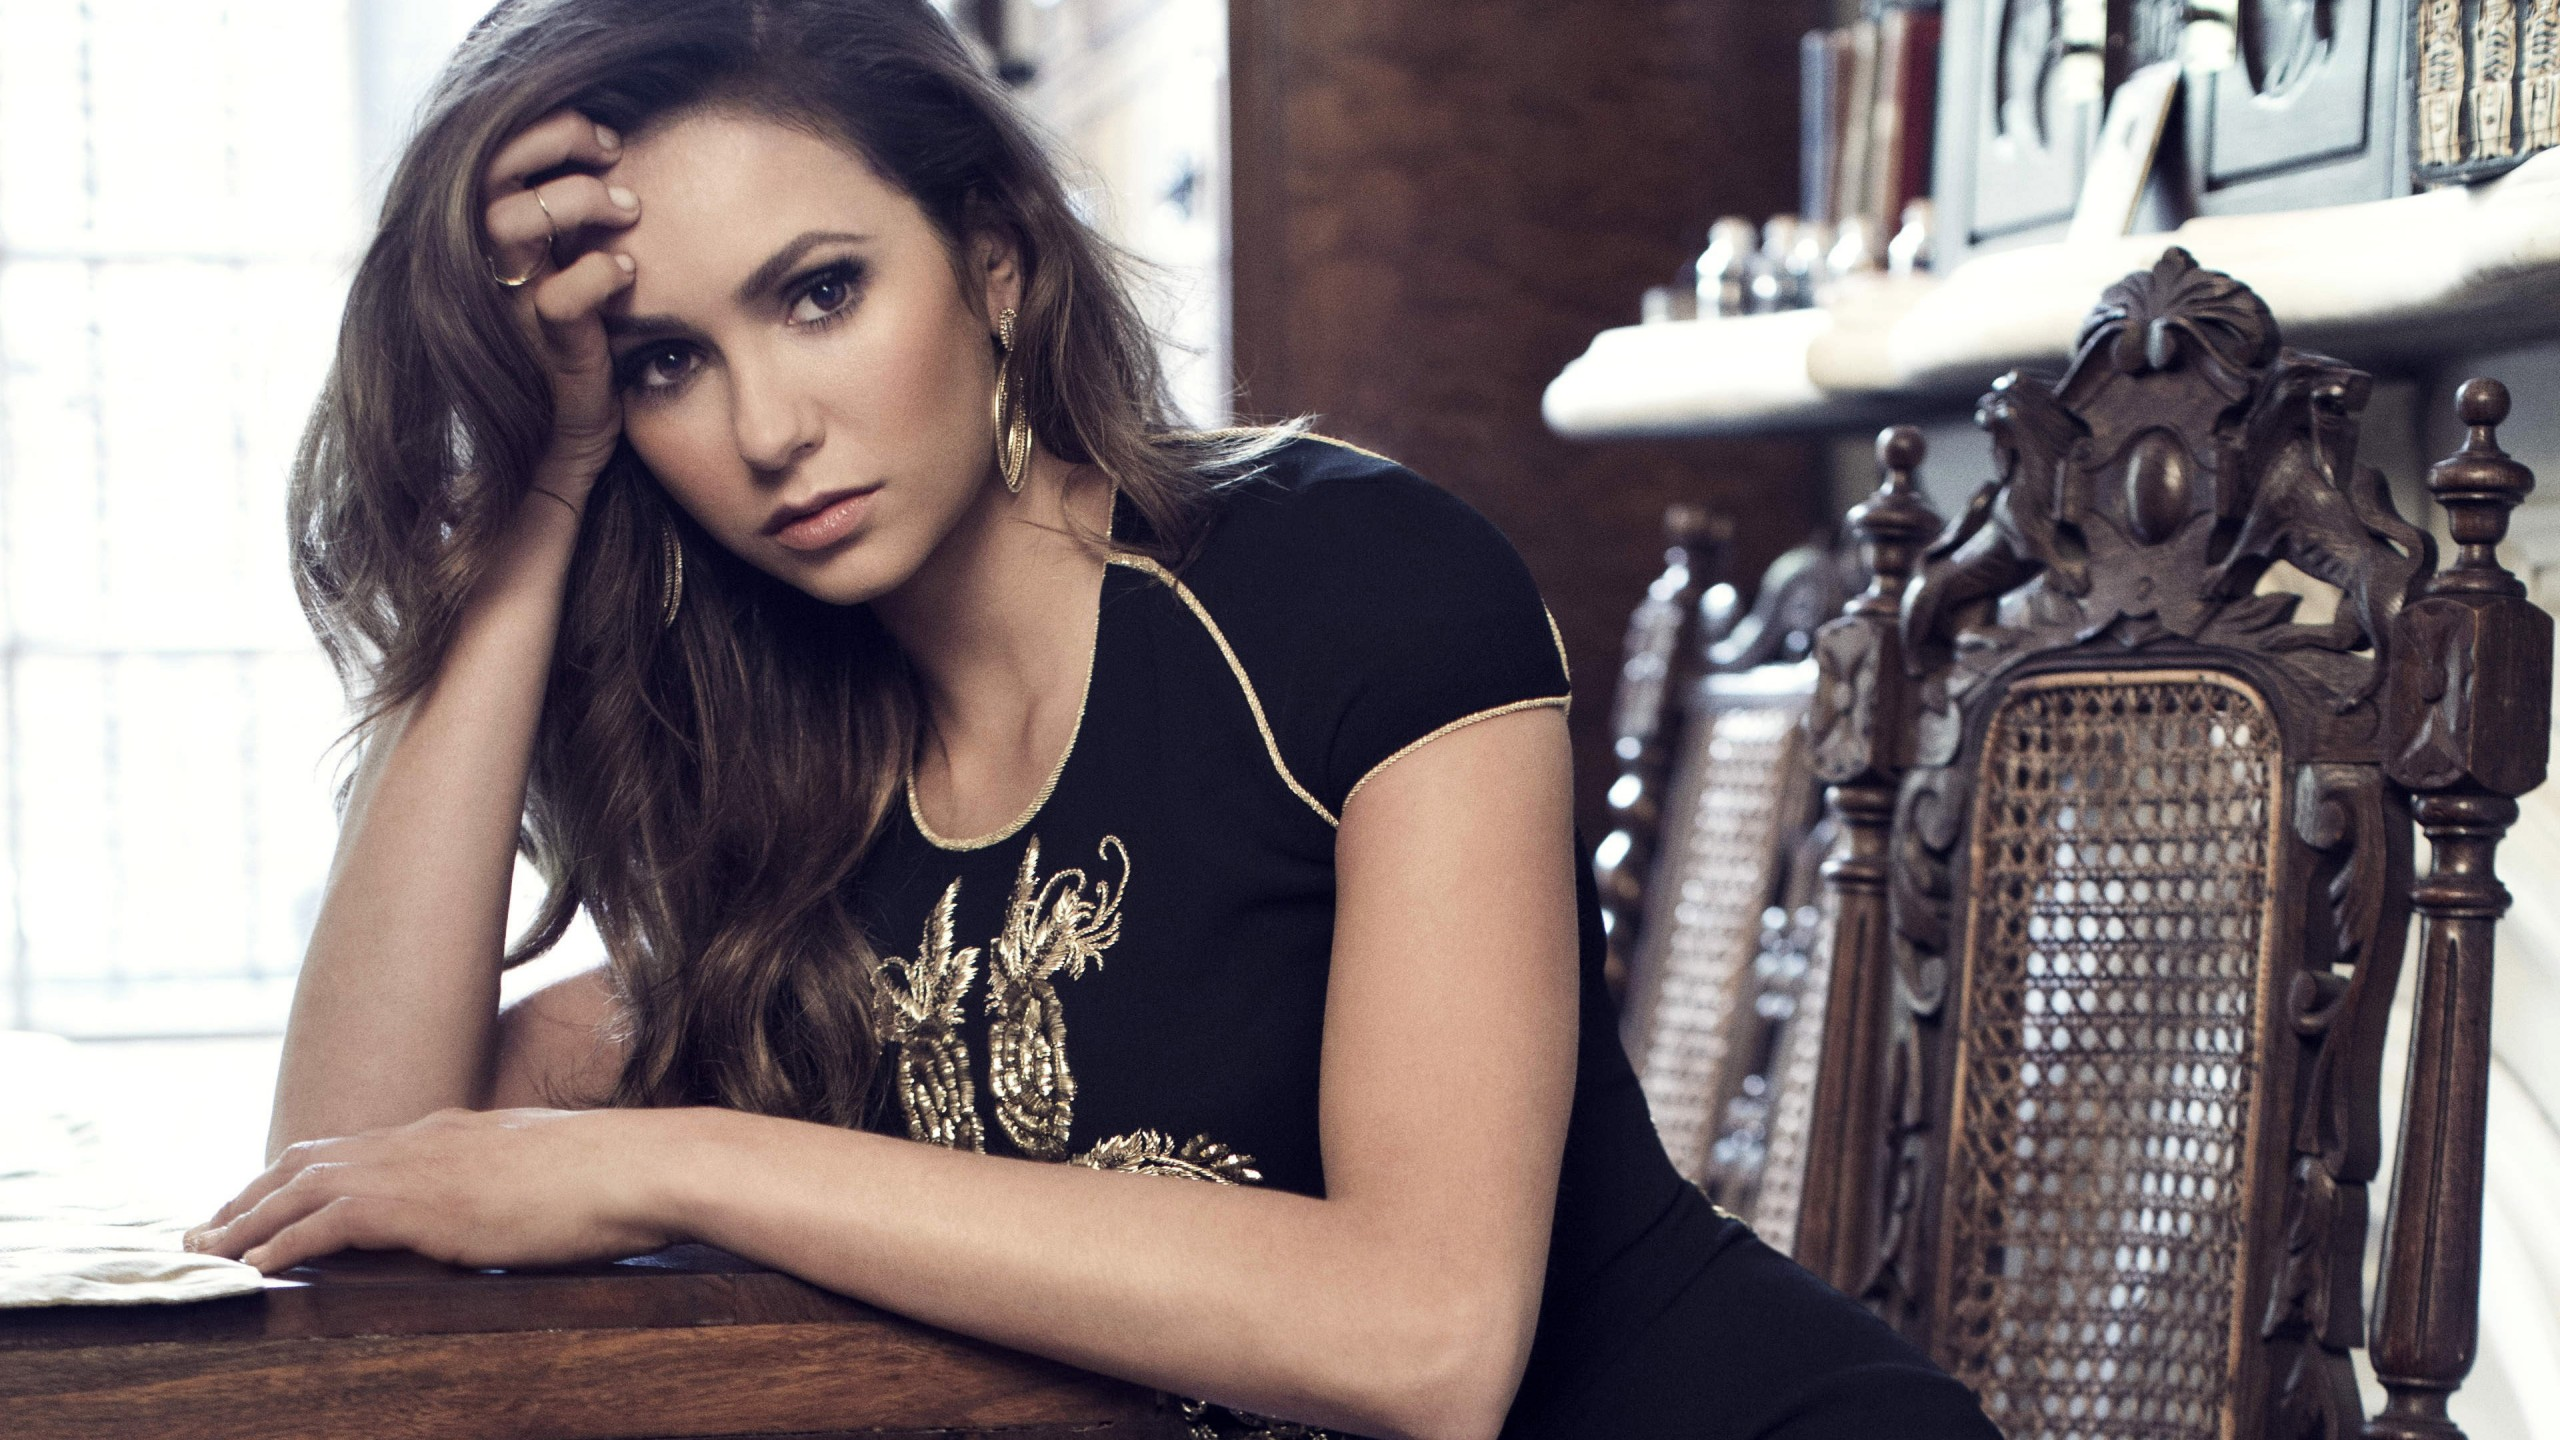 Vampire Diaries Hd Wallpapers 1366x768 Nina Dobrev 4k Wallpapers Hd Wallpapers Id 17267